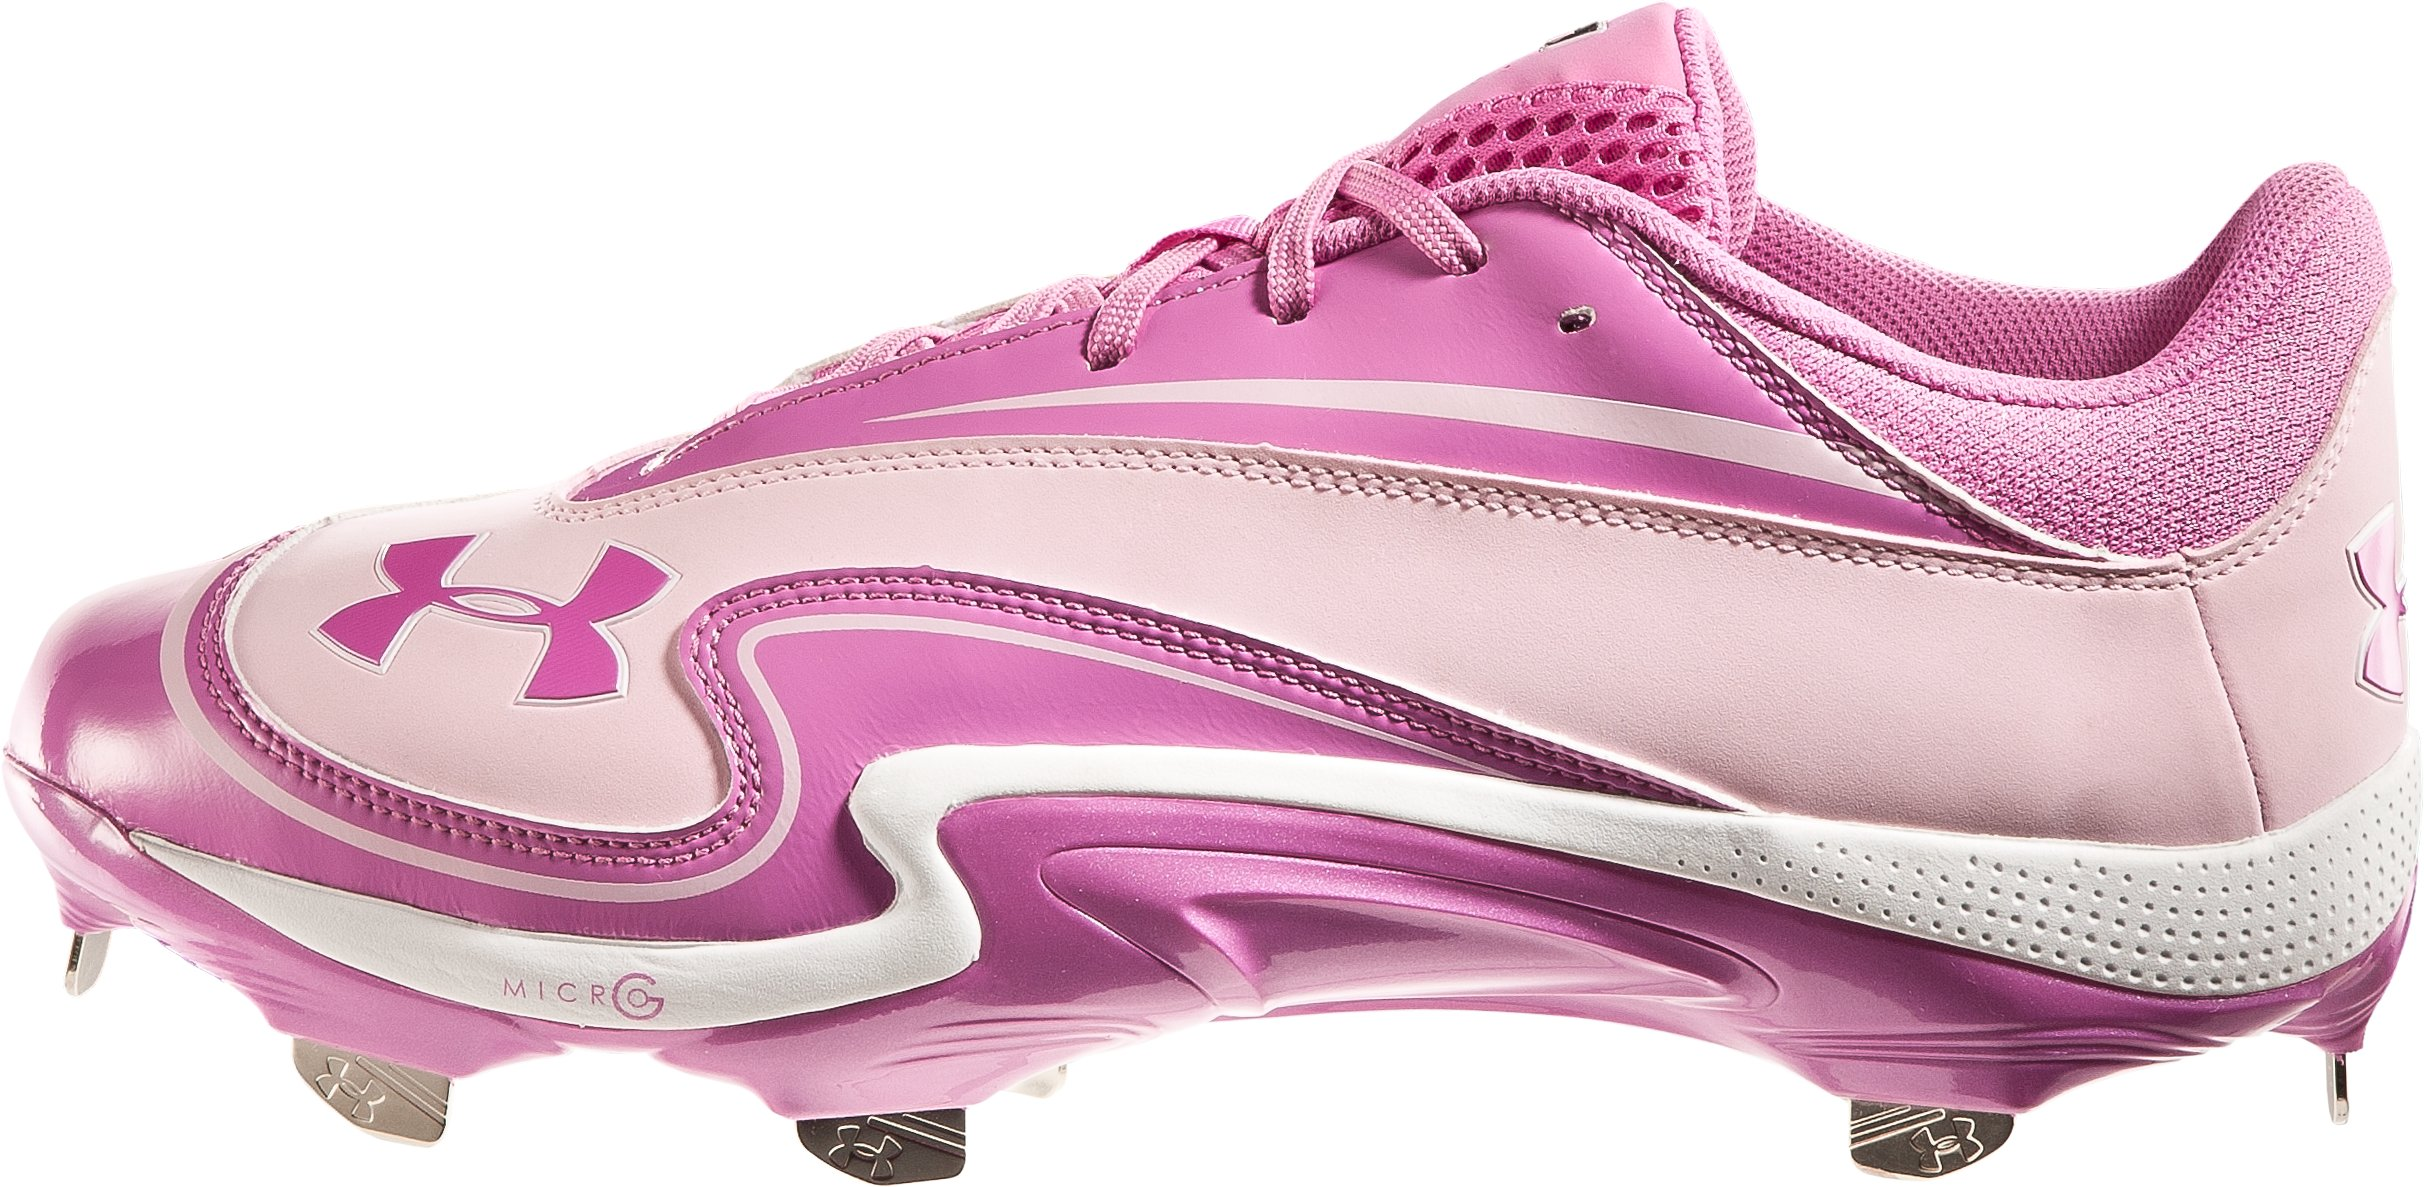 Men's UA Natural III Low ST Baseball Cleats - Special Edition, Pink Power